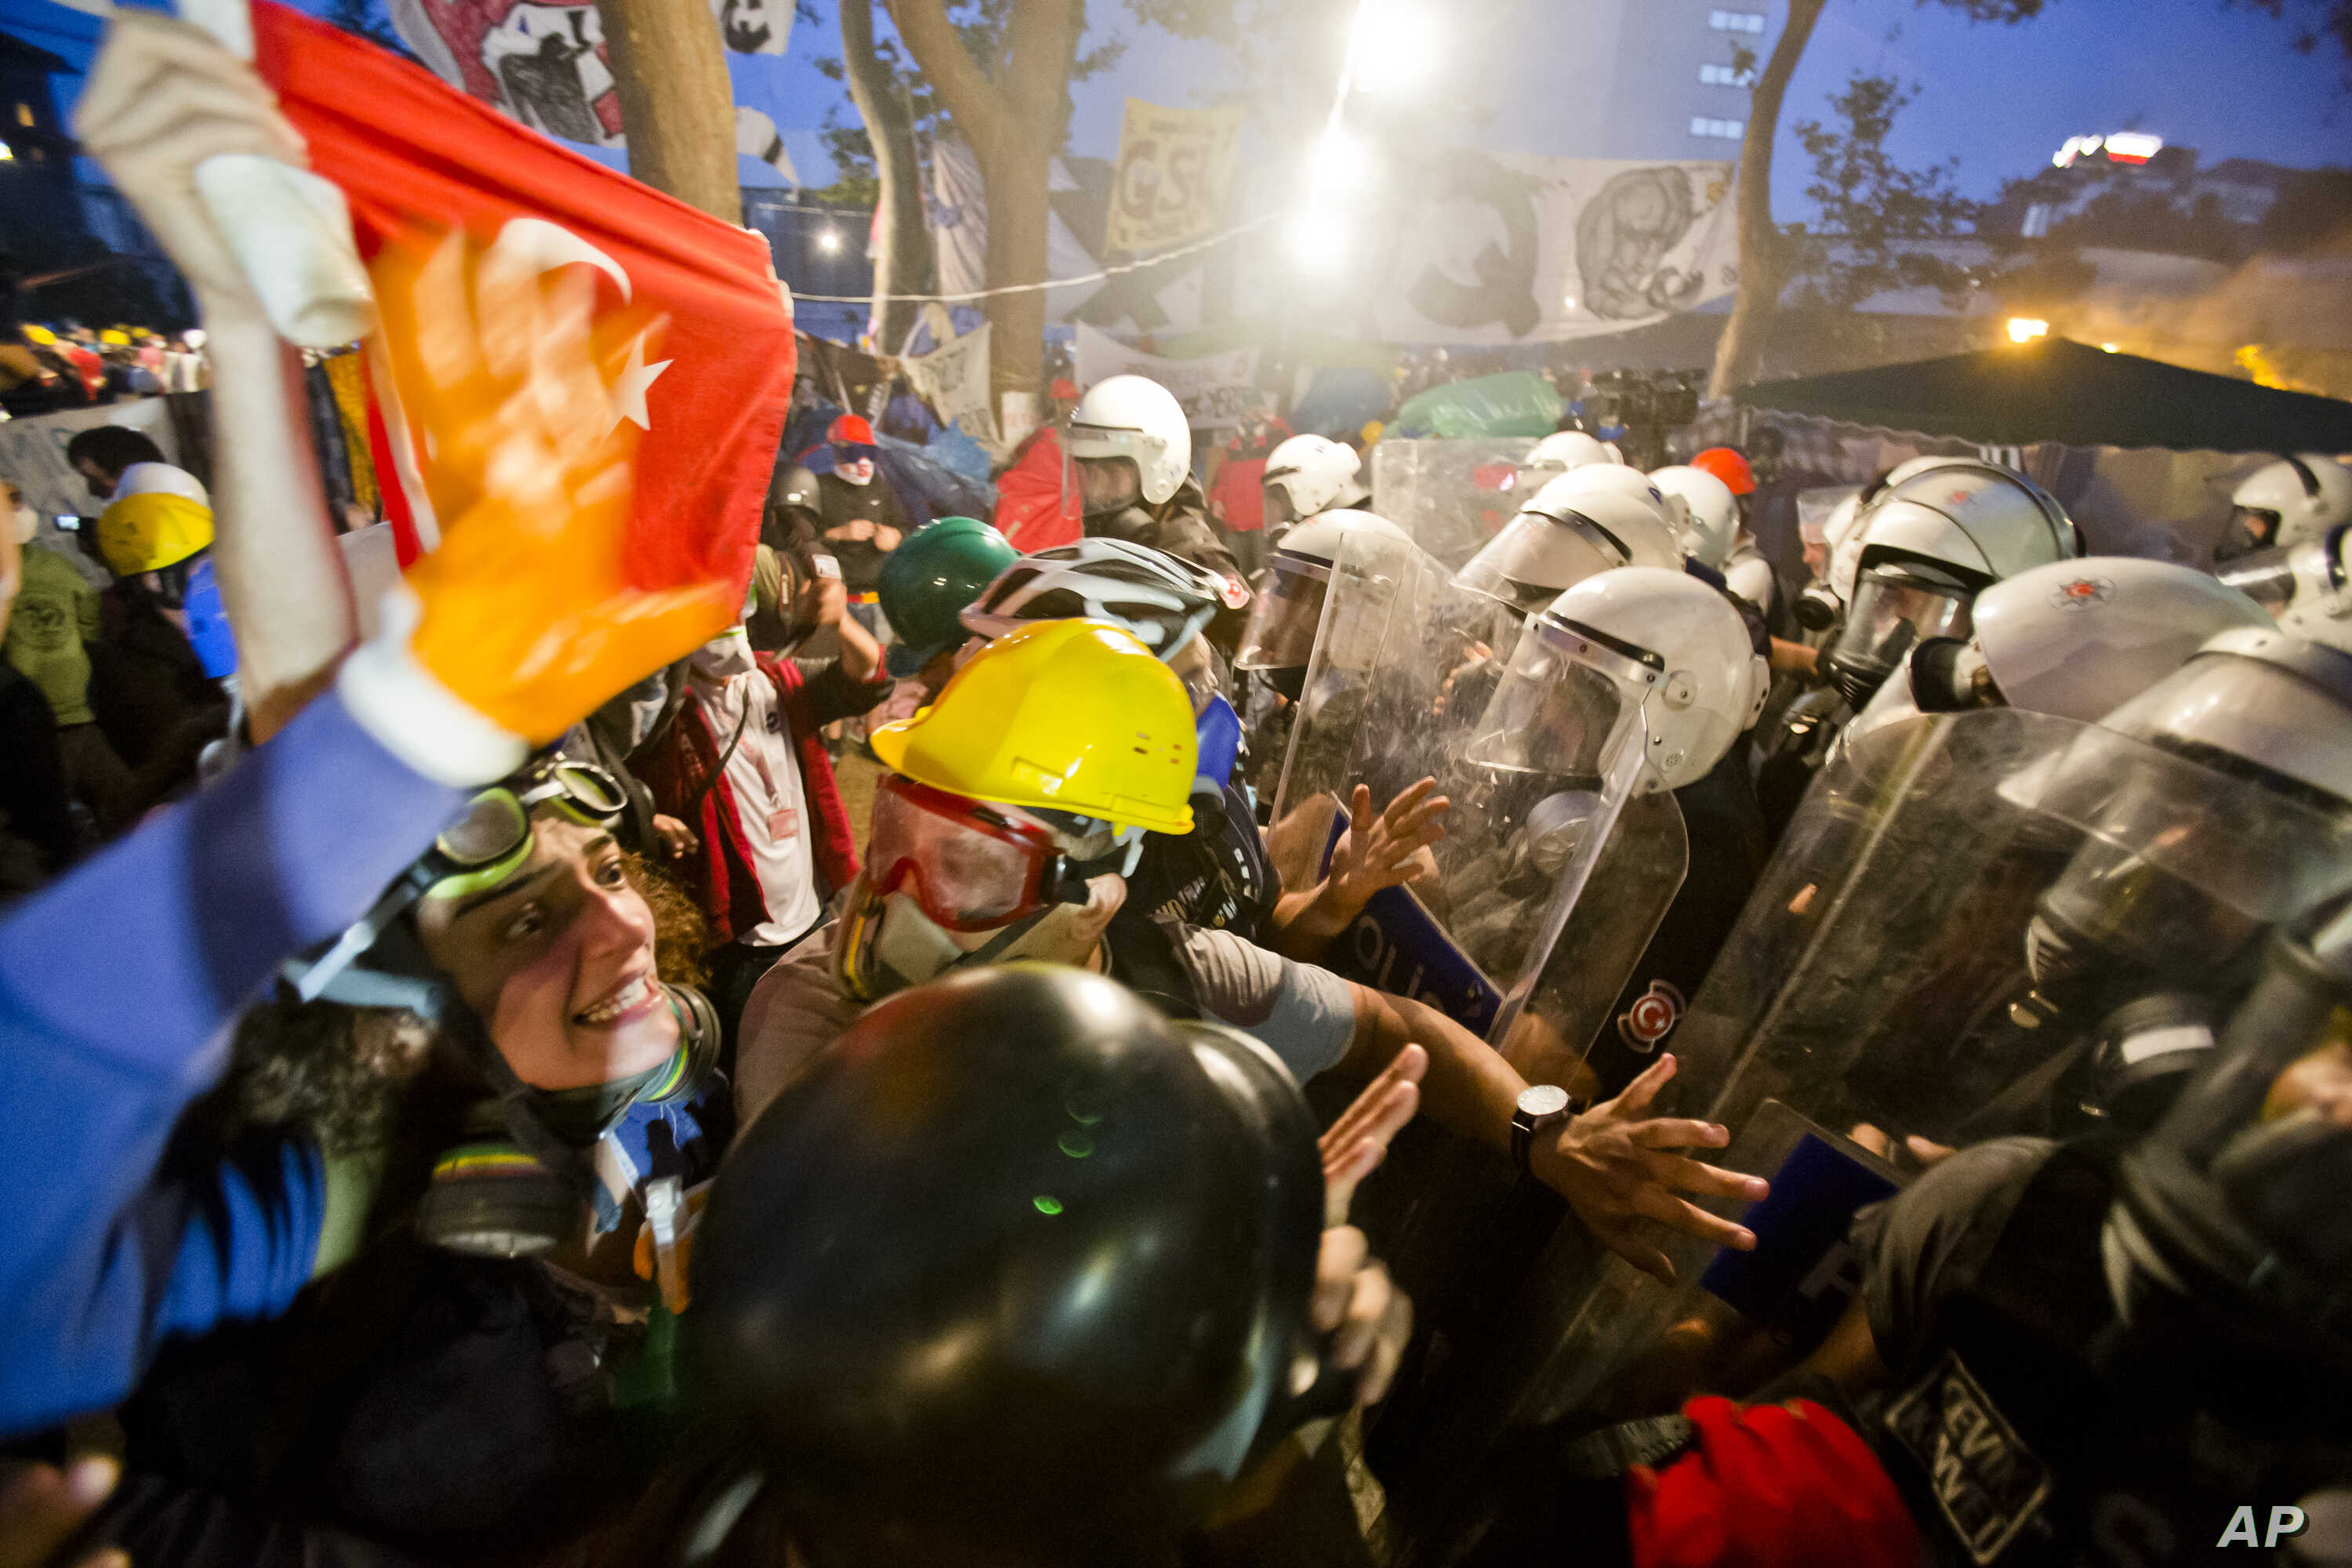 Protesters try to resist the advance of riot police in Gezi Park in Istanbul, Turkey, Saturday, June 15, 2013.